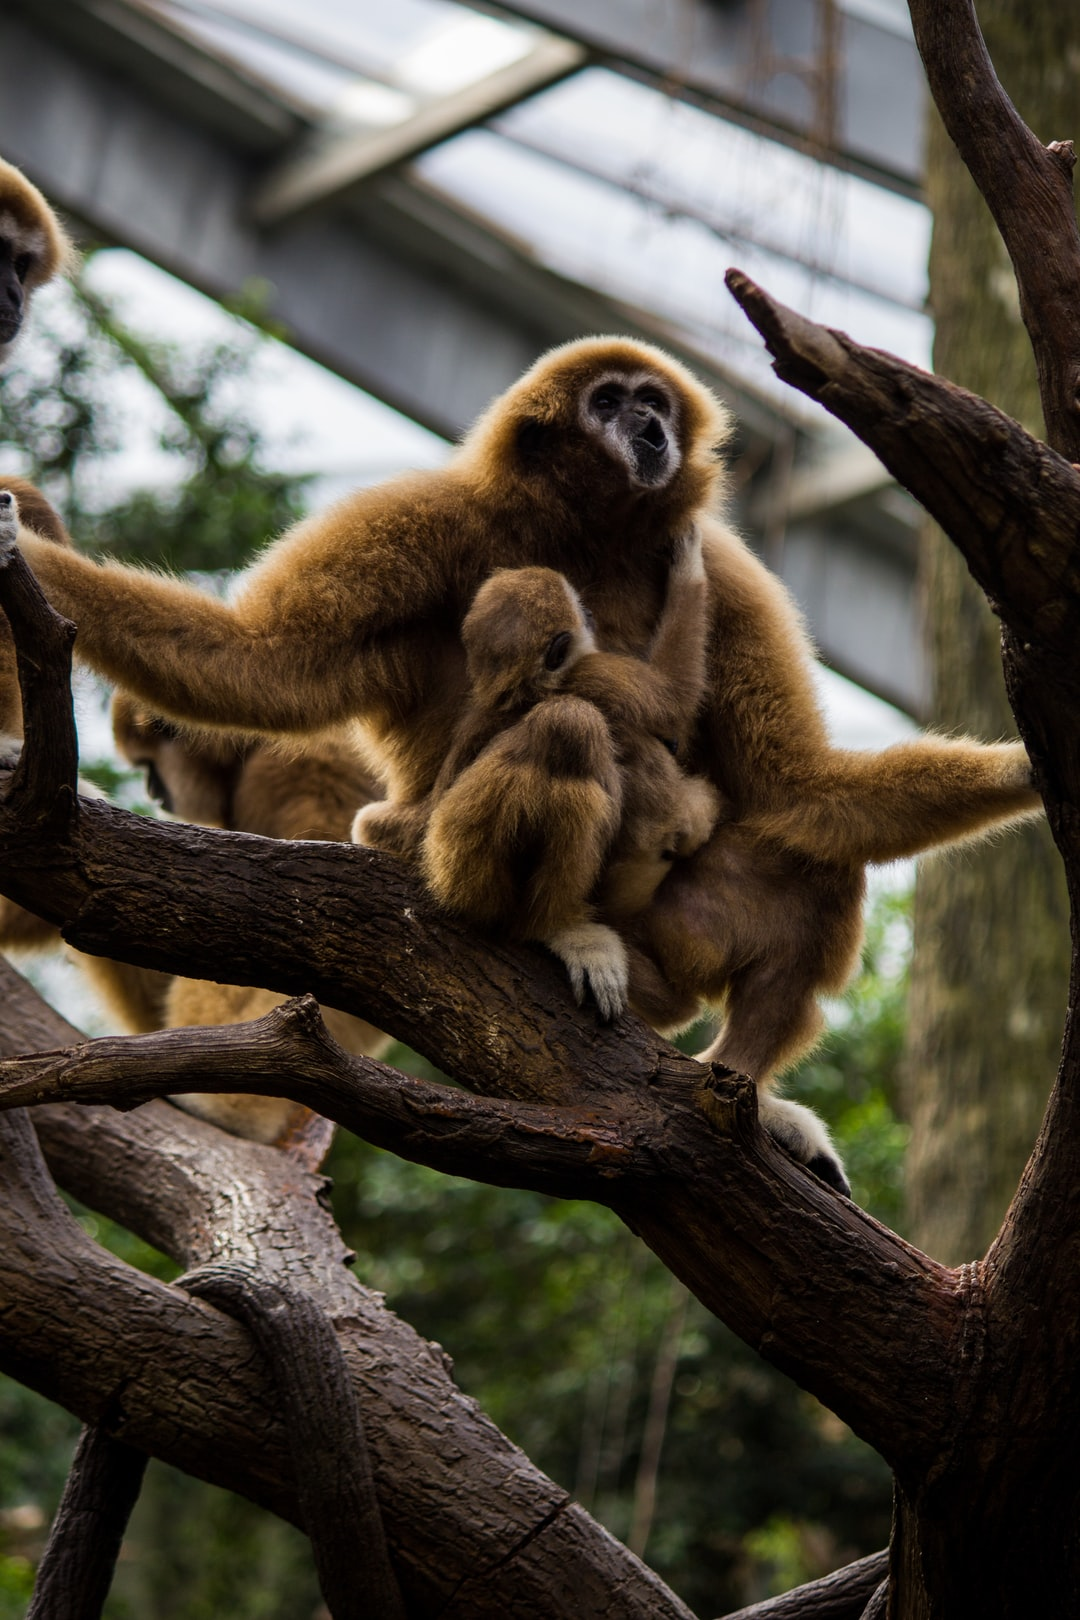 Gibbon mother with her child in the Lied Jungle. The mother is howling, filling the jungle with exotic sounds.